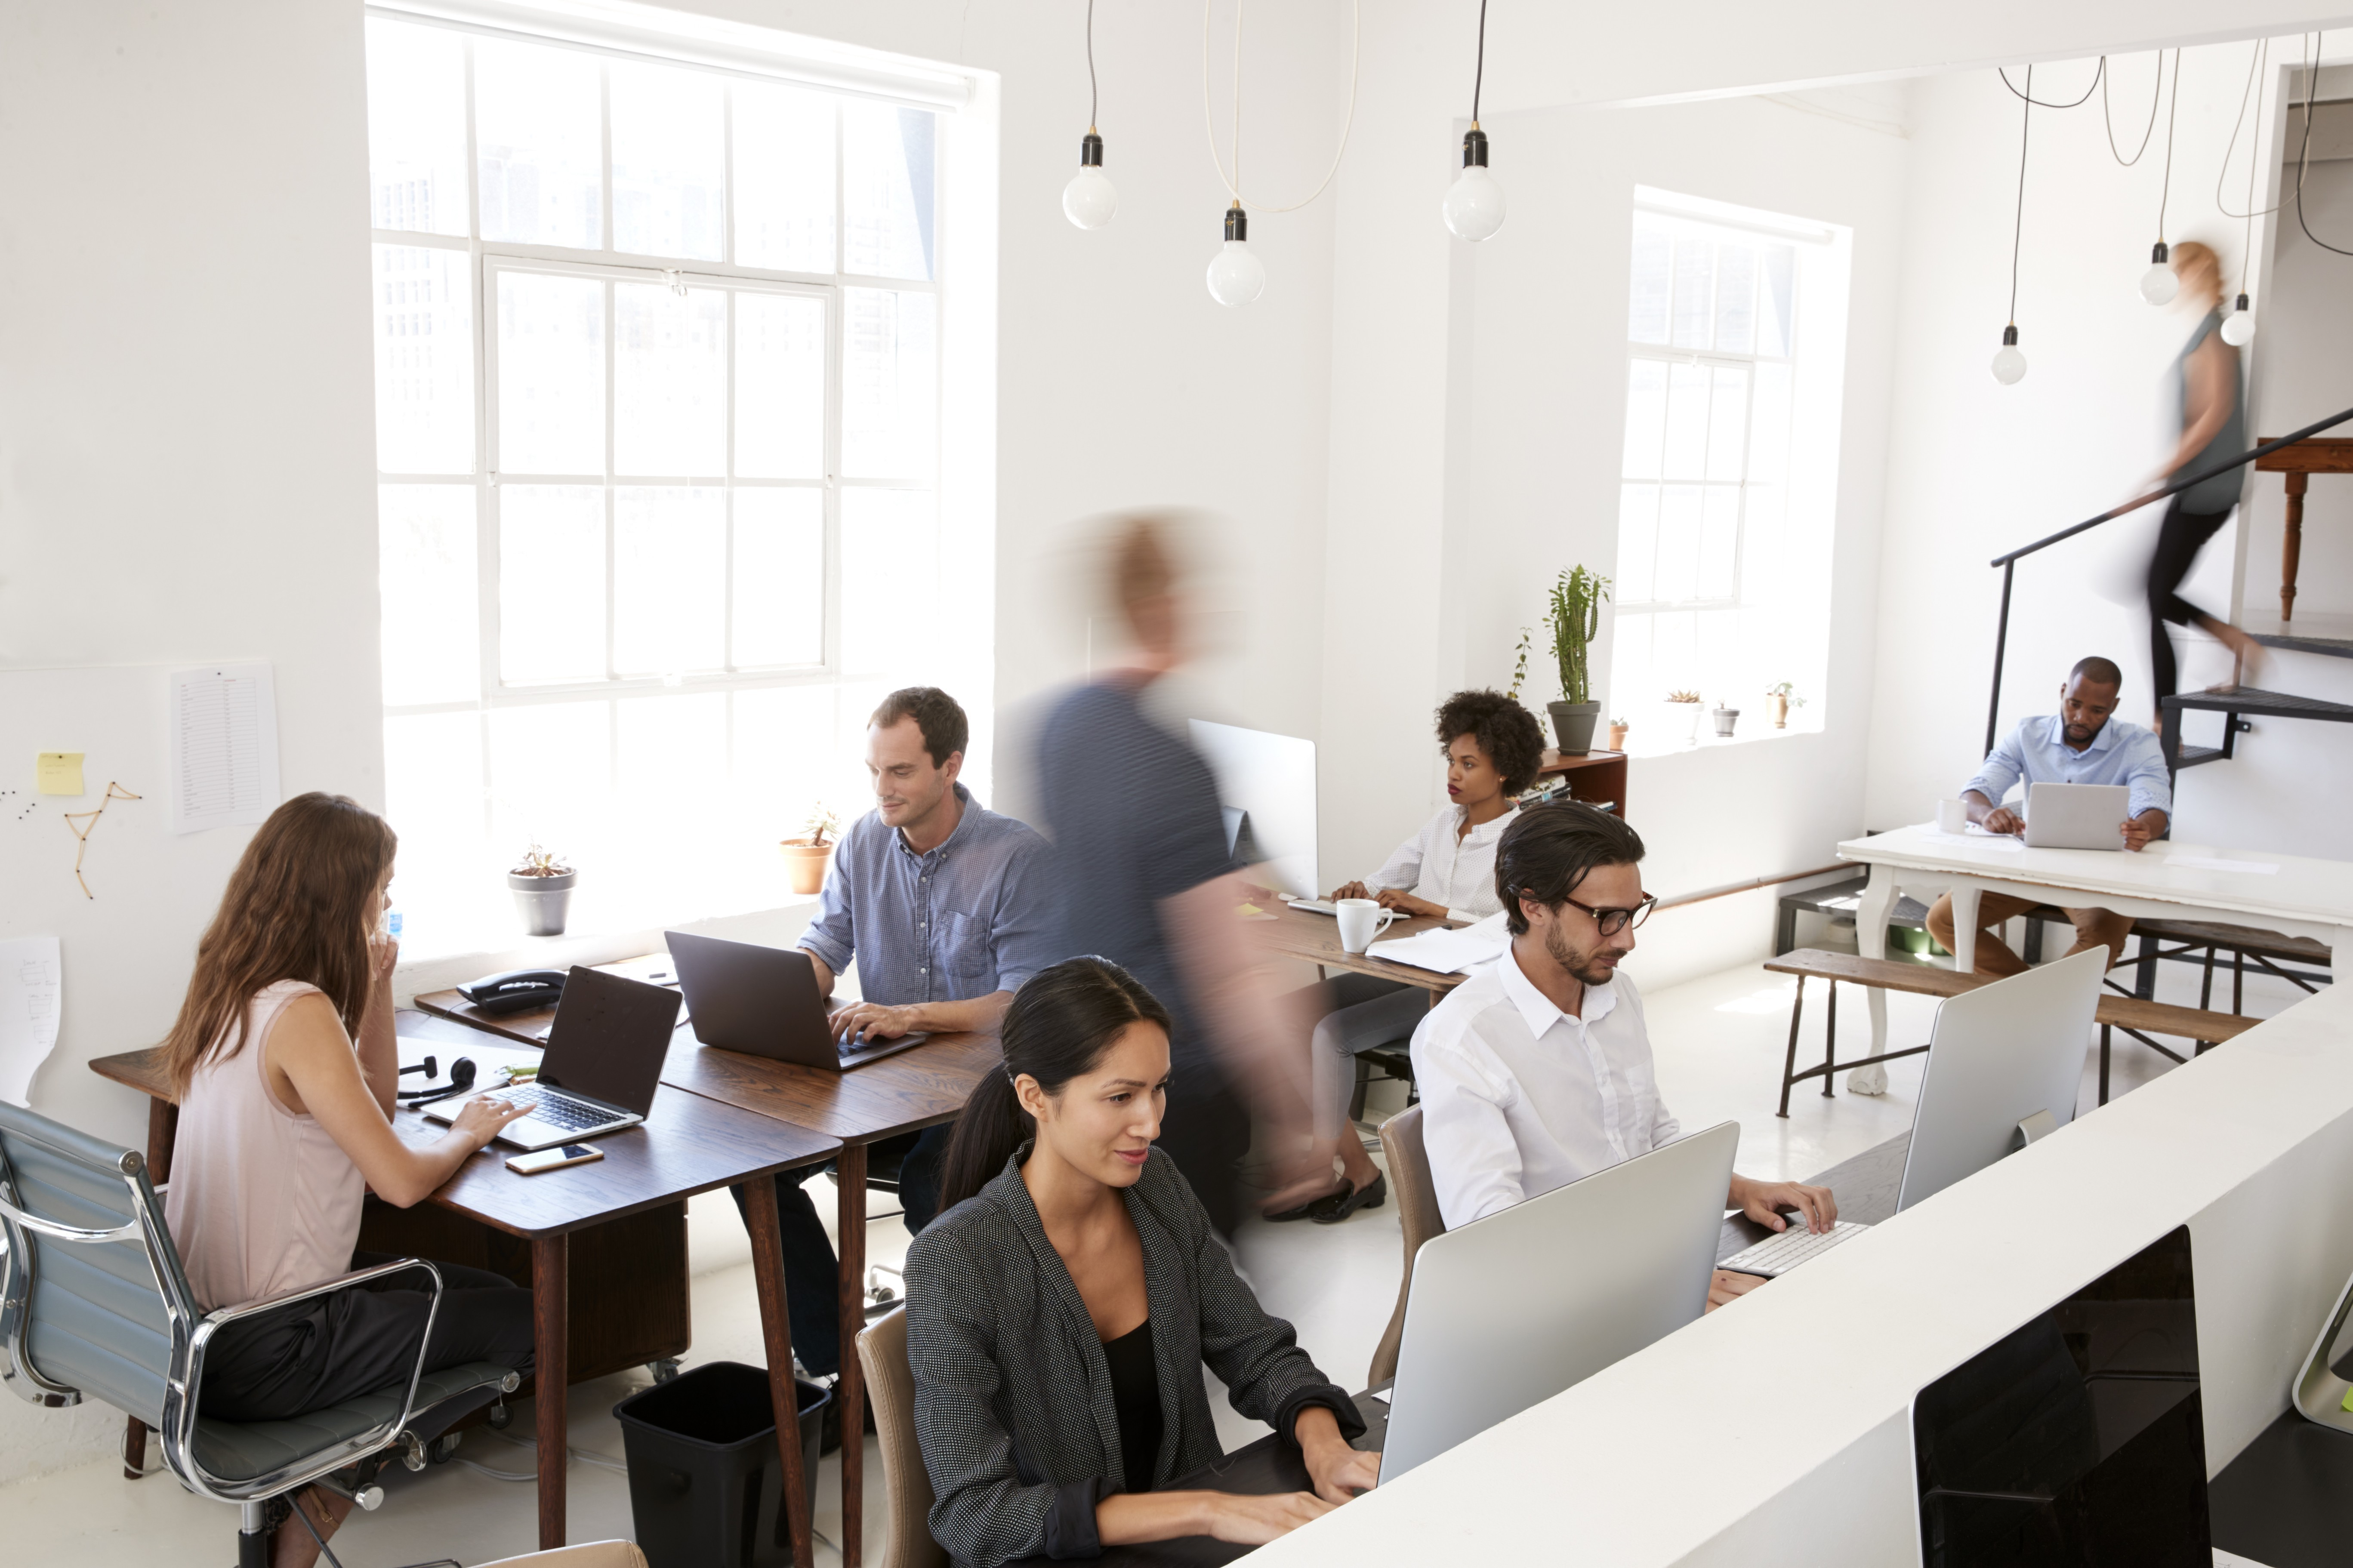 Relation Between Workspace Efficiency and Employee Productivity